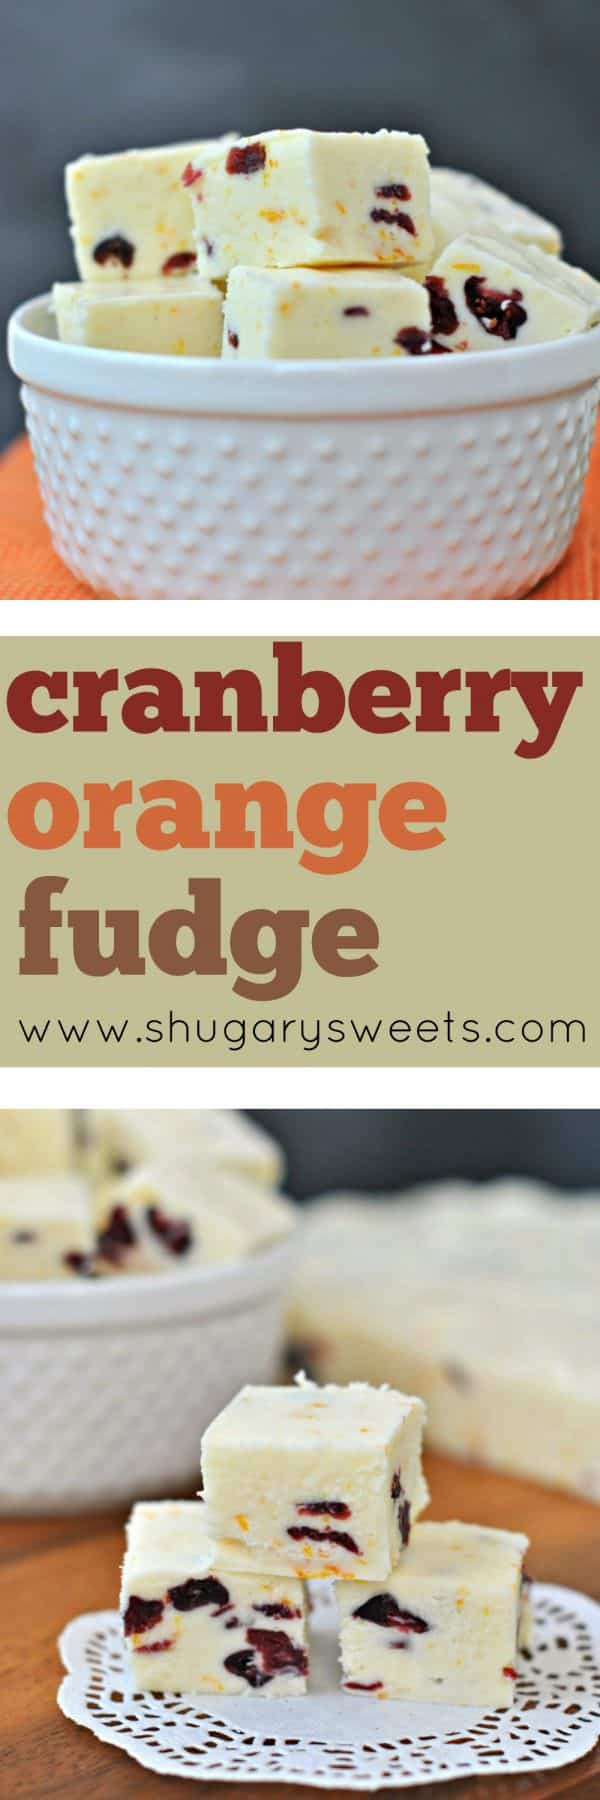 Cranberry Orange Fudge: this is a delicious sweet treat for any time of year! Craisins and orange zest give this soft, sweet fudge a kick of flavor!